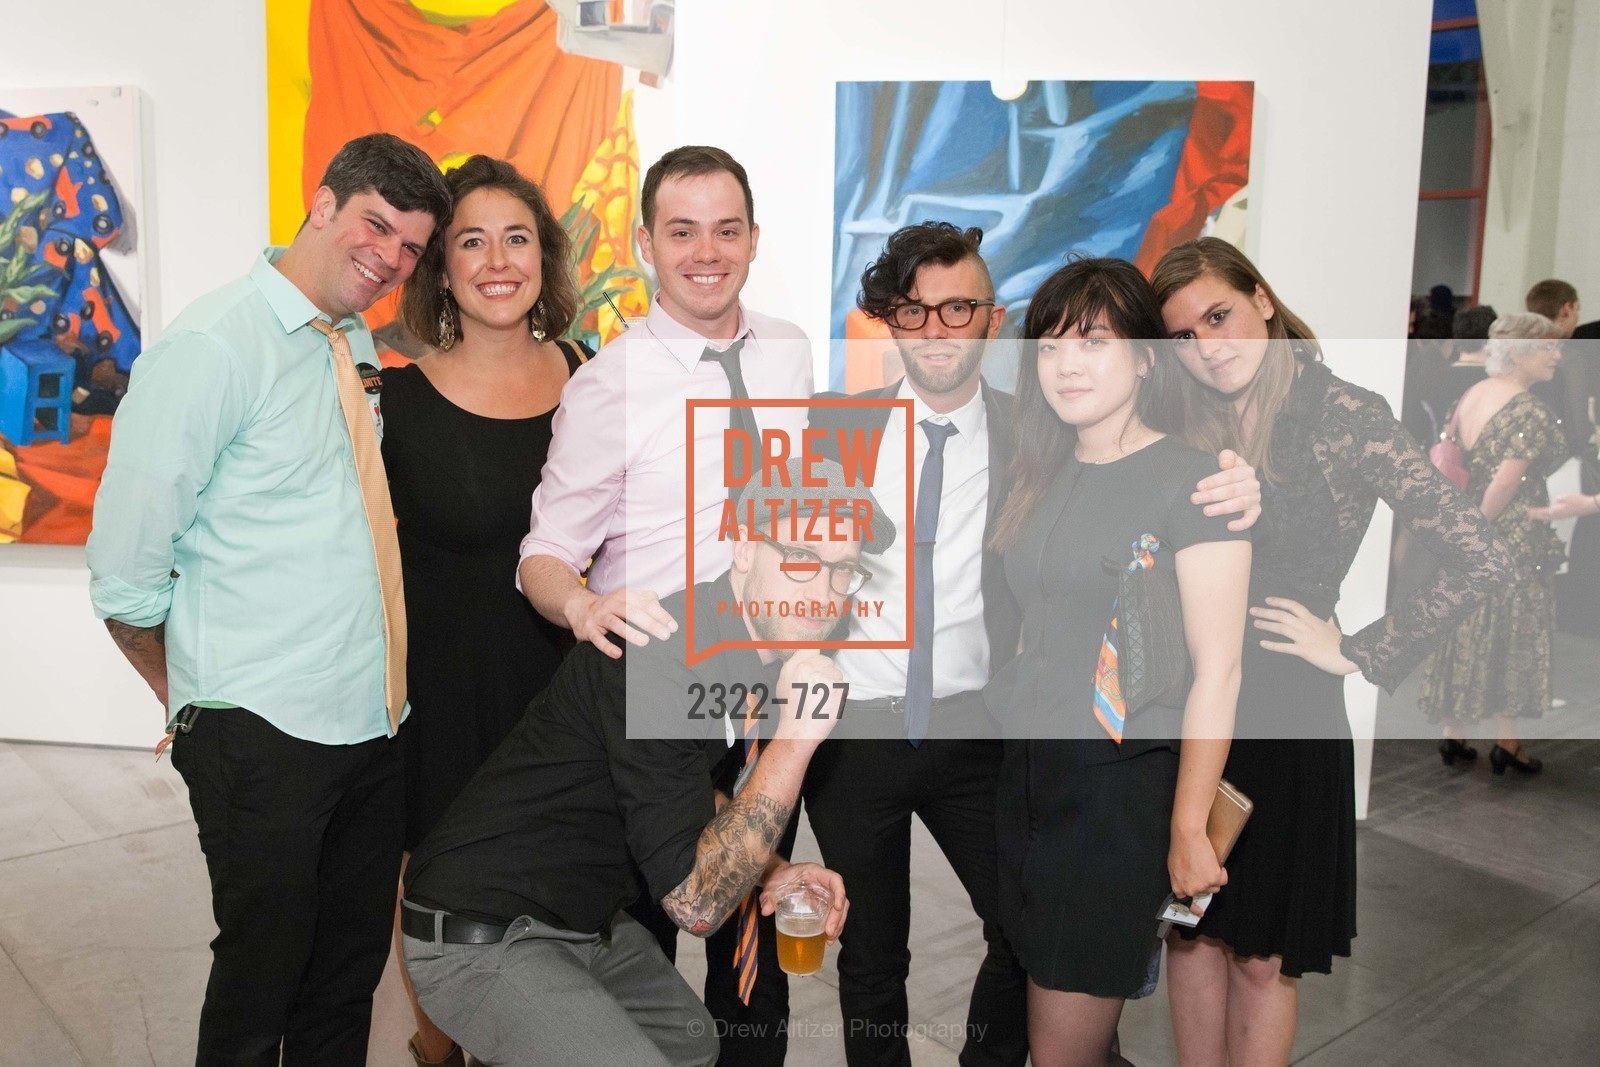 Scott Isenbarger, Madeleine Brown, Scott Welsh, Michael Wayne Garfoot, Aaron David Kissman, Grace Kim, Dana Bialik, SAN FRANCISCO ART INSTITUTE Gala Honoring Art Visionary and Advocate ROSELYNE CHROMAN SWIG, US, May 14th, 2015,Drew Altizer, Drew Altizer Photography, full-service agency, private events, San Francisco photographer, photographer california